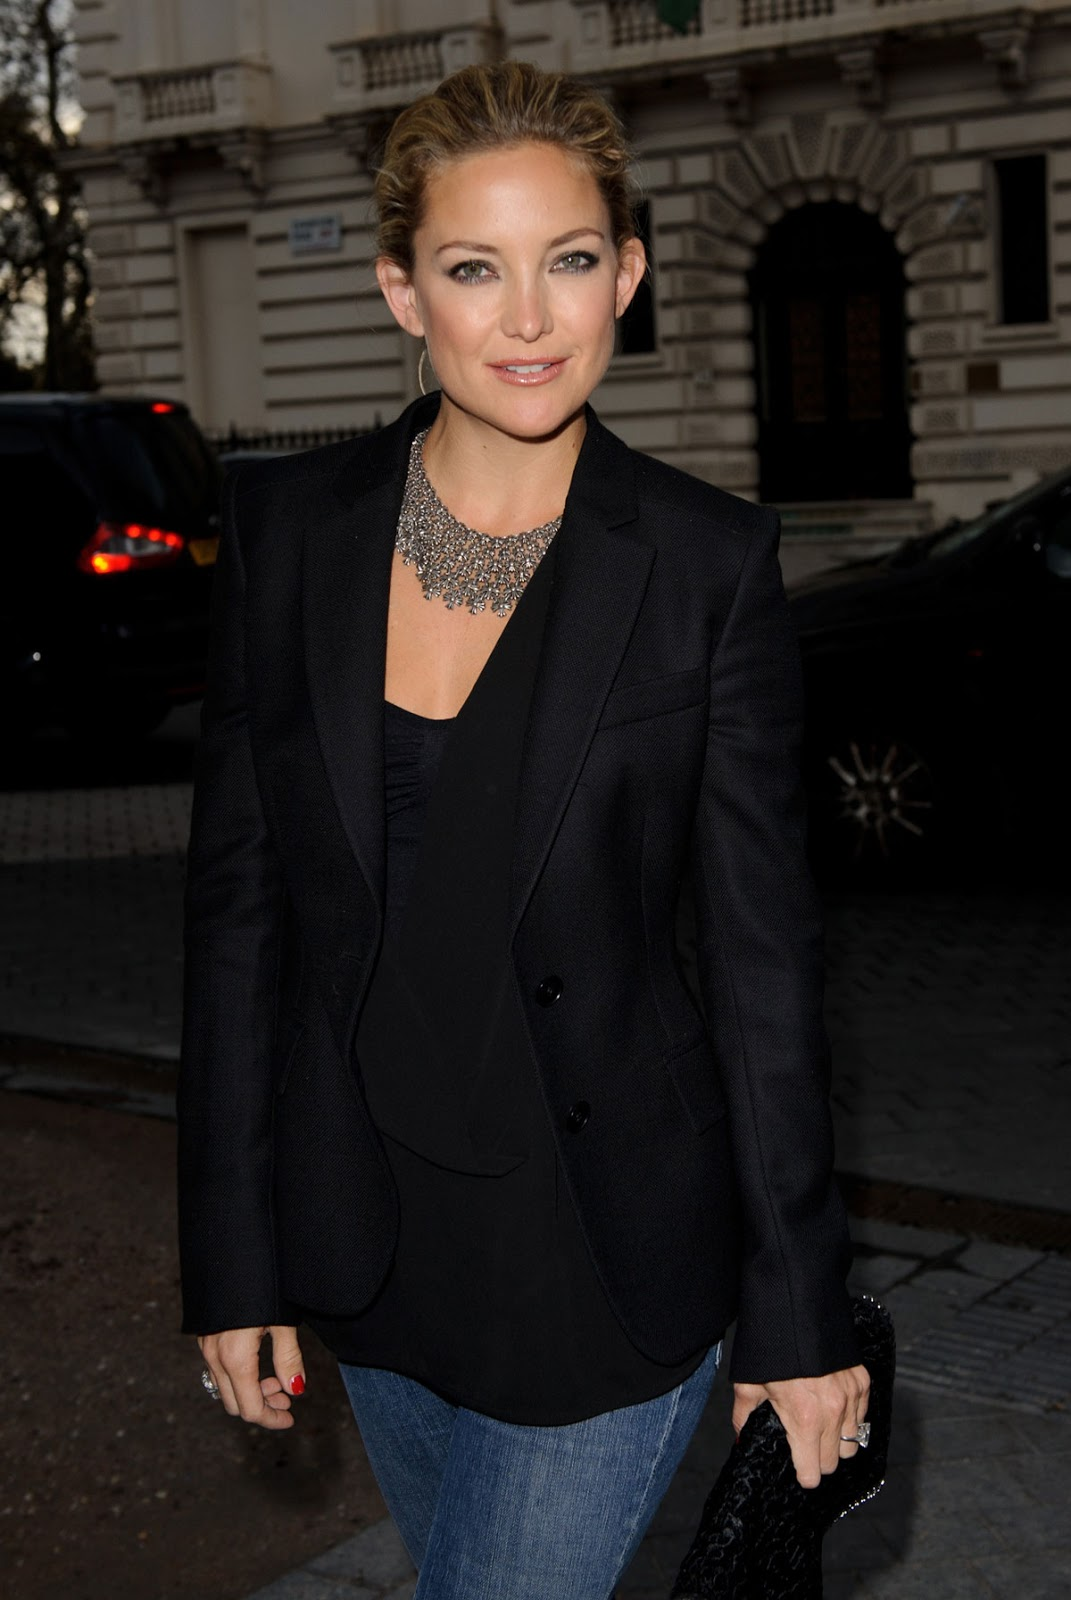 HQ Photos of Kate Hudson At The Vogue Festival At Royal Geographical Society In London